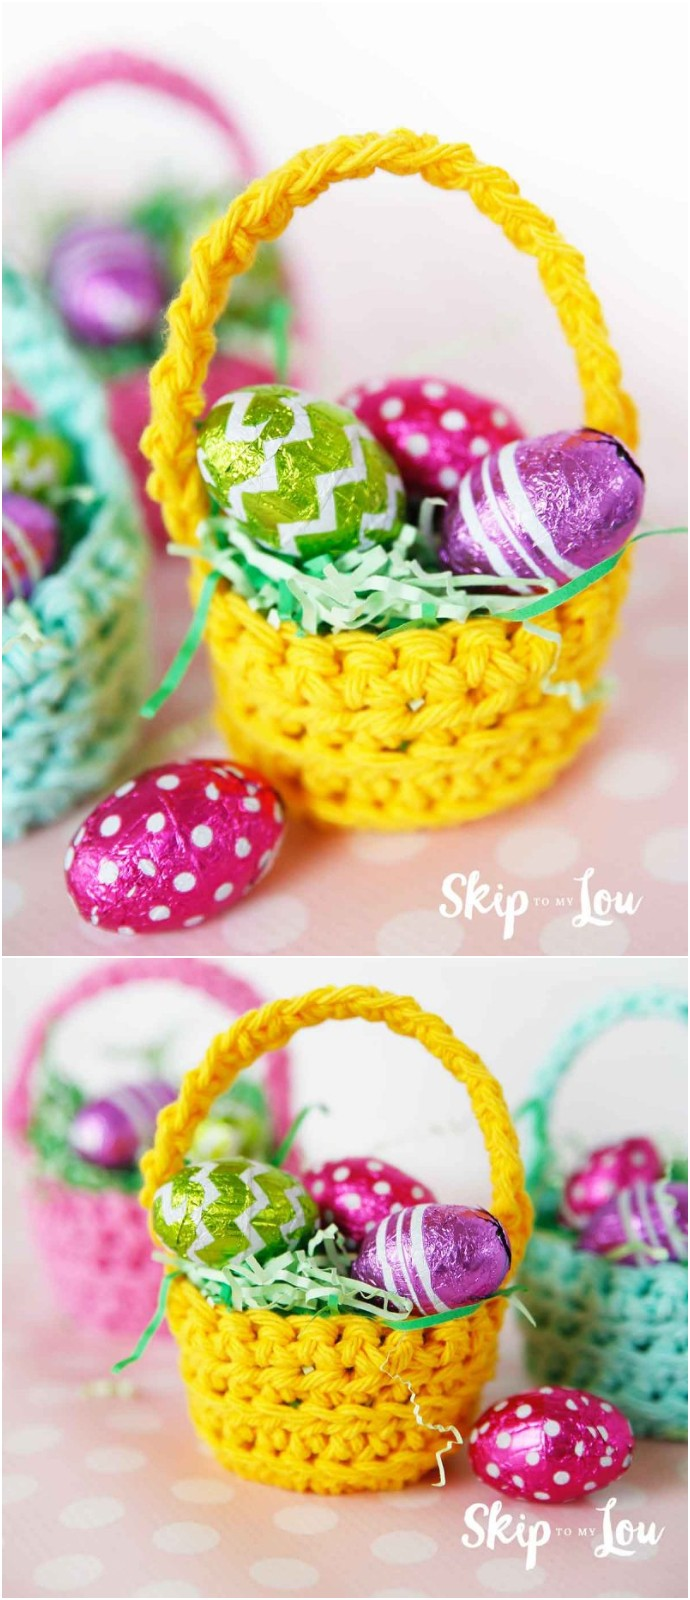 Cutest Mini Crochet Basket PatternCutest Mini Crochet Basket Pattern